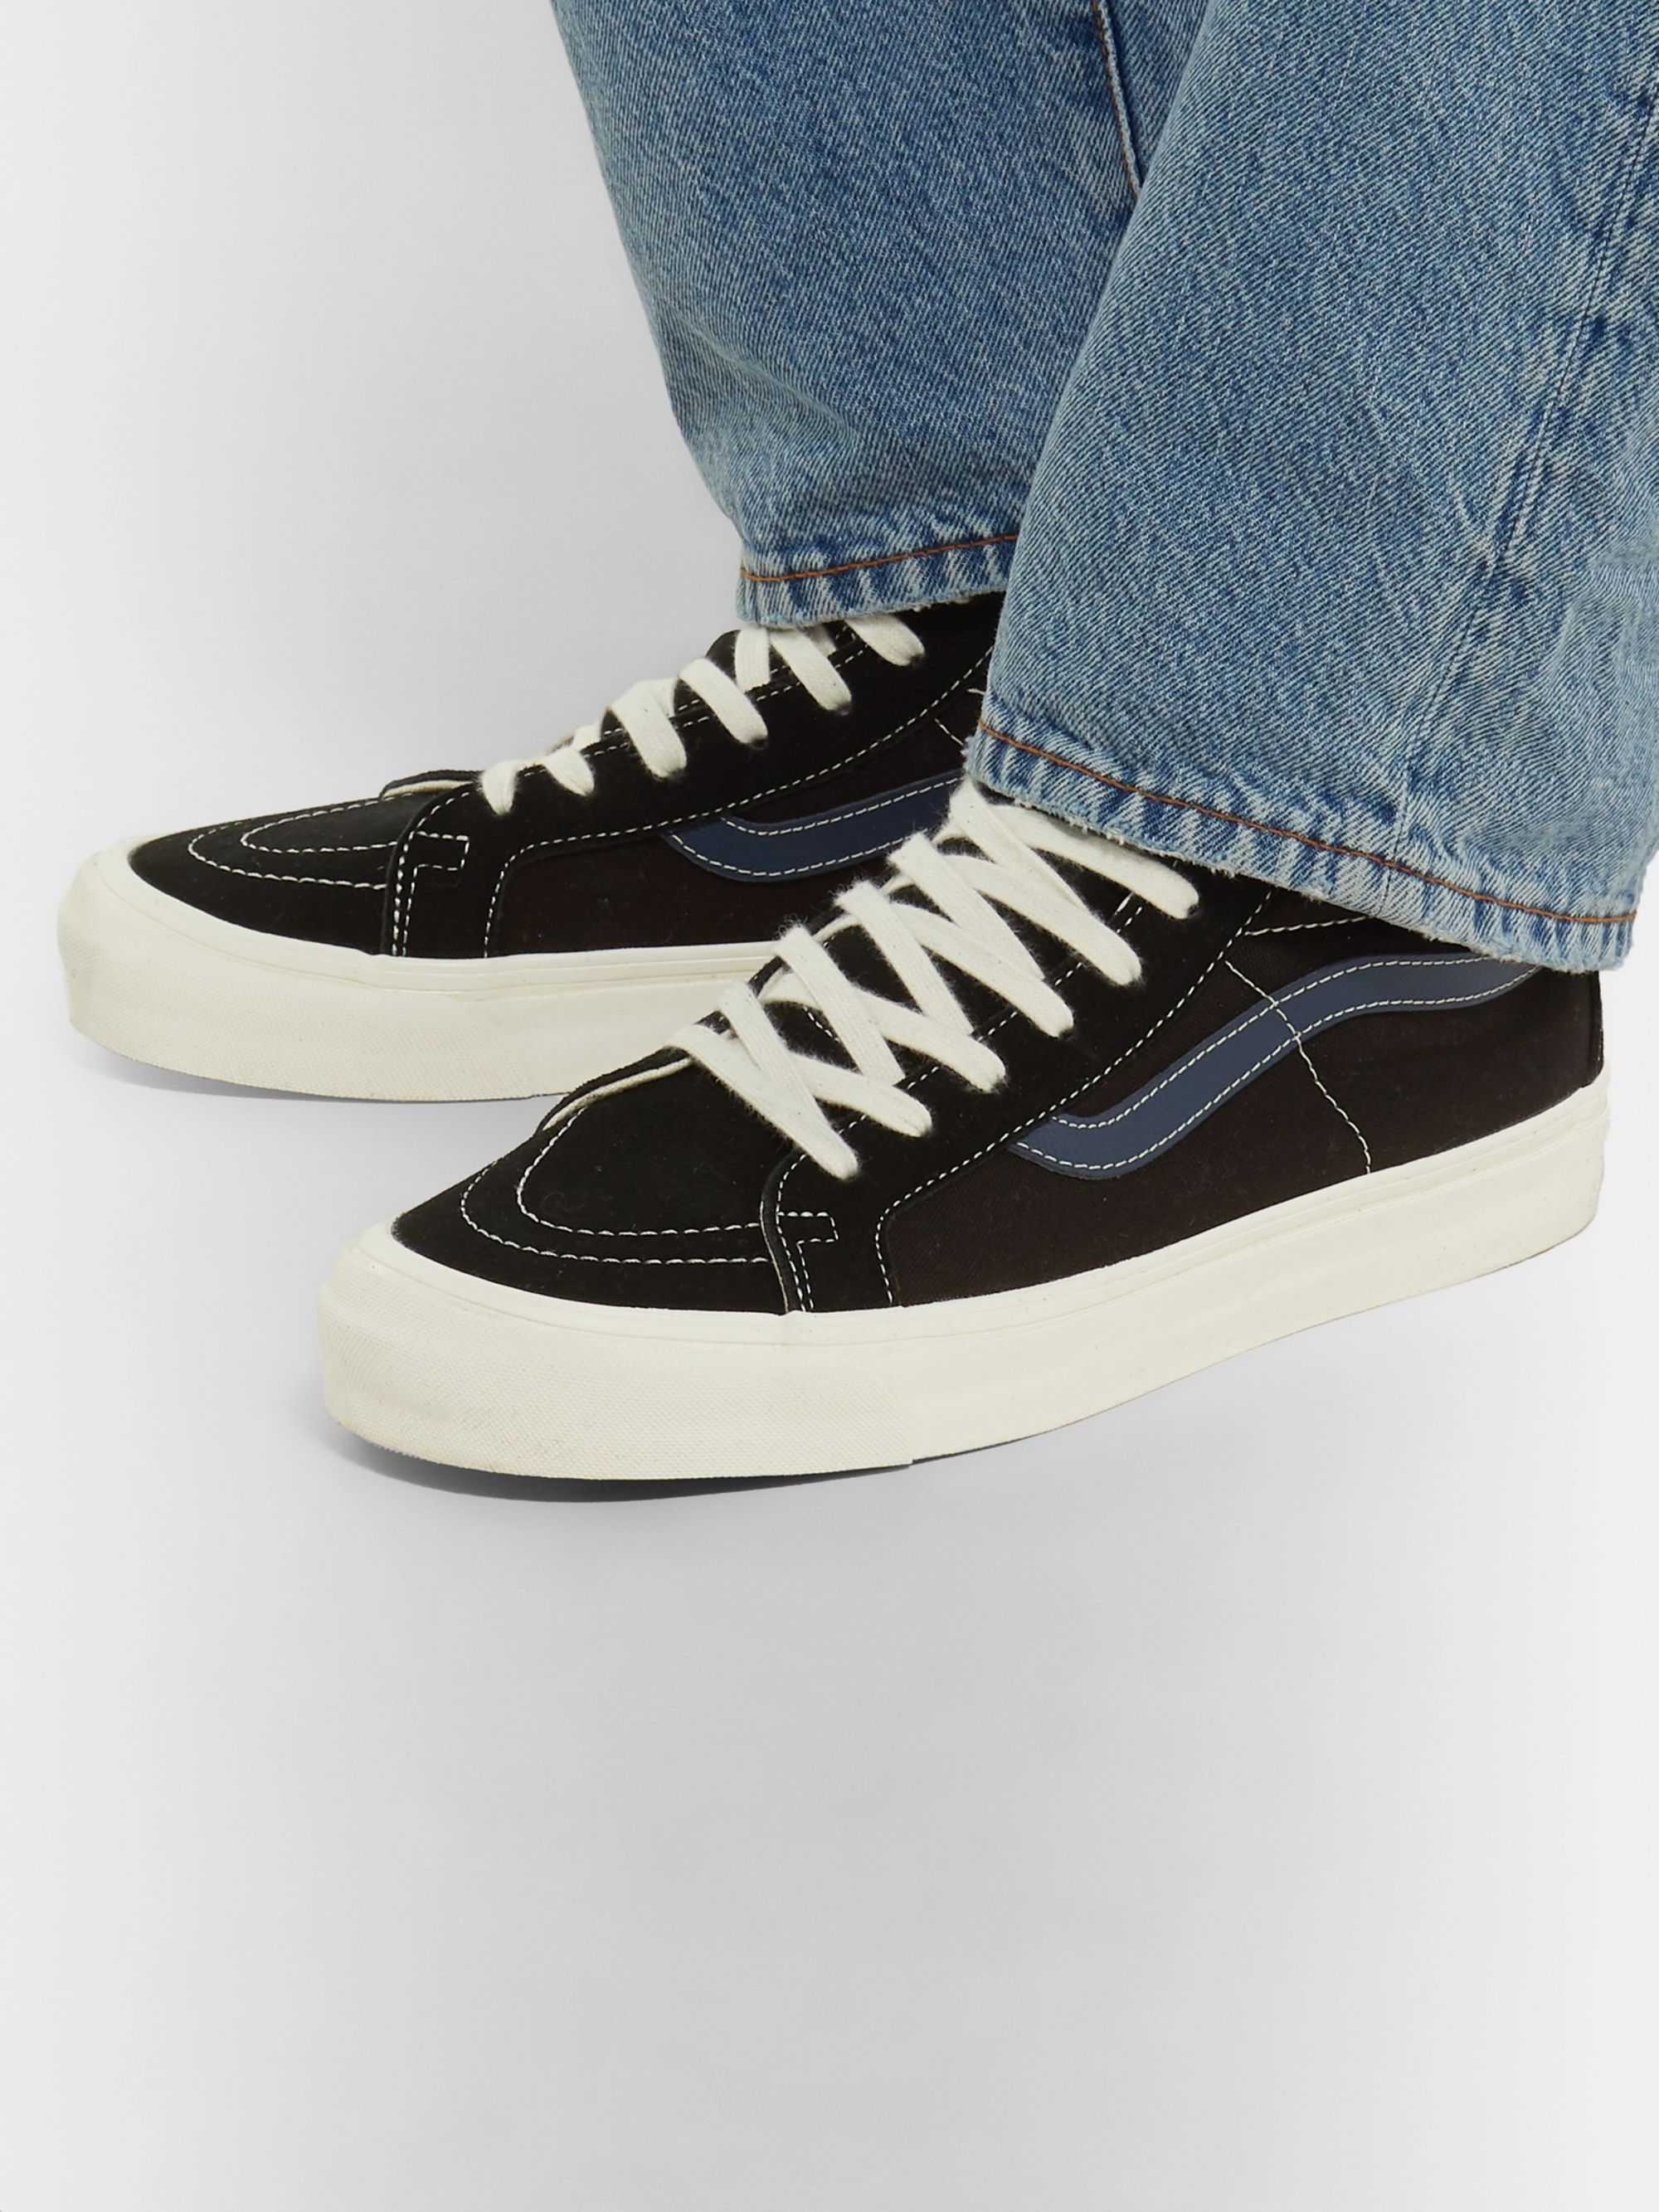 OG SK8 Hi LX Leather Trimmed Canvas and Suede High Top Sneakers